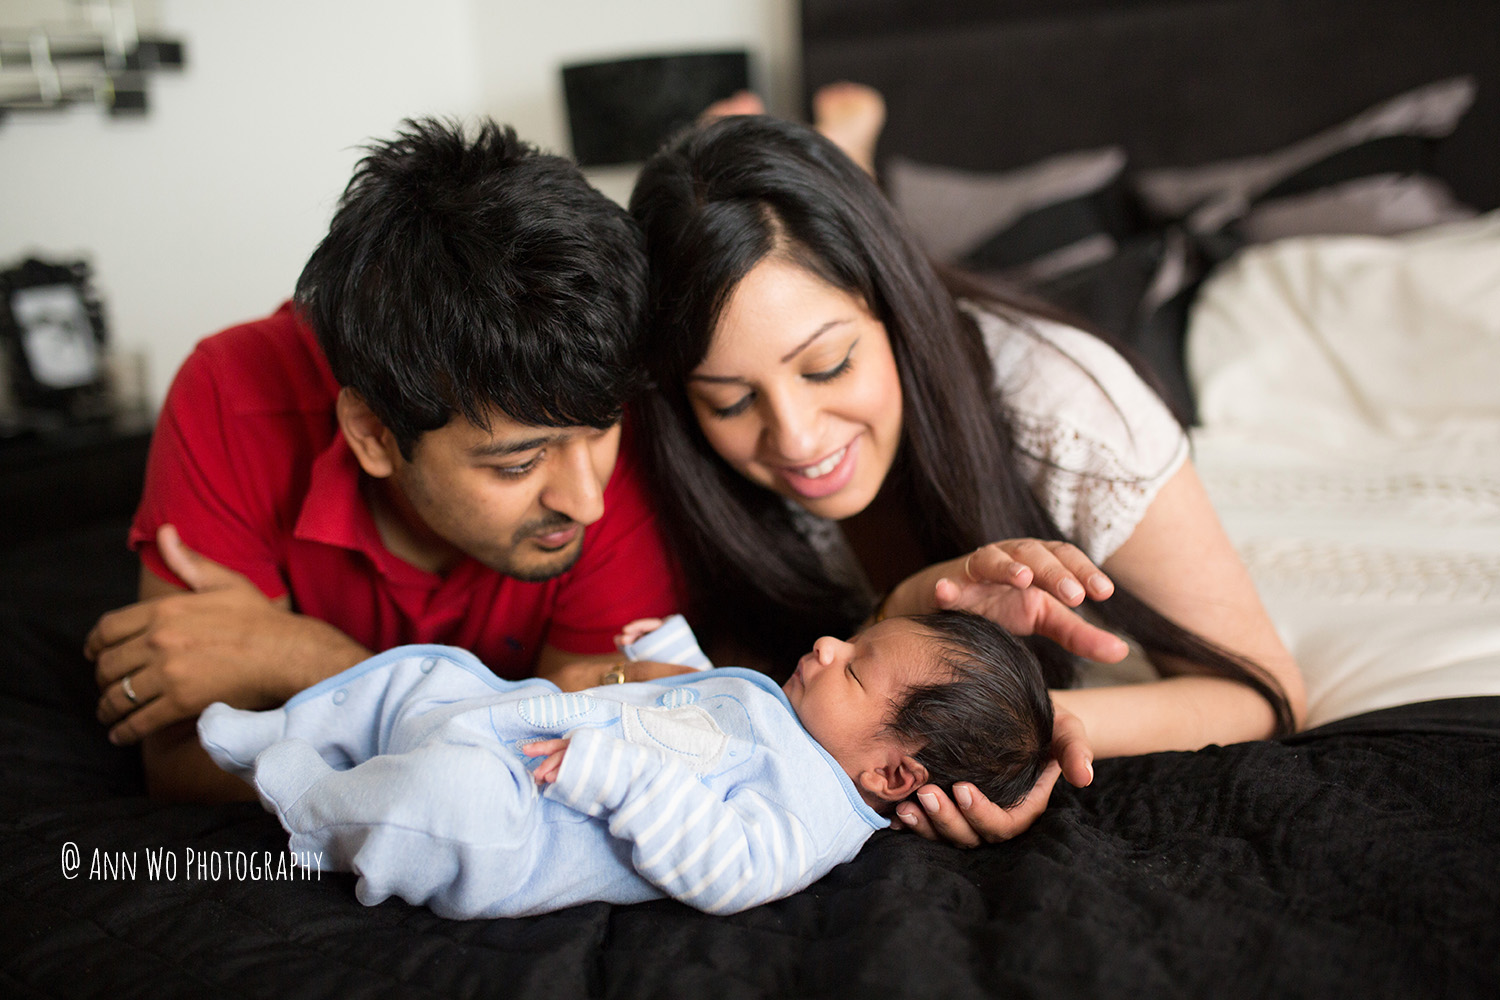 024-newborn-photography-session-at-home-ann-wo-london-24.JPG